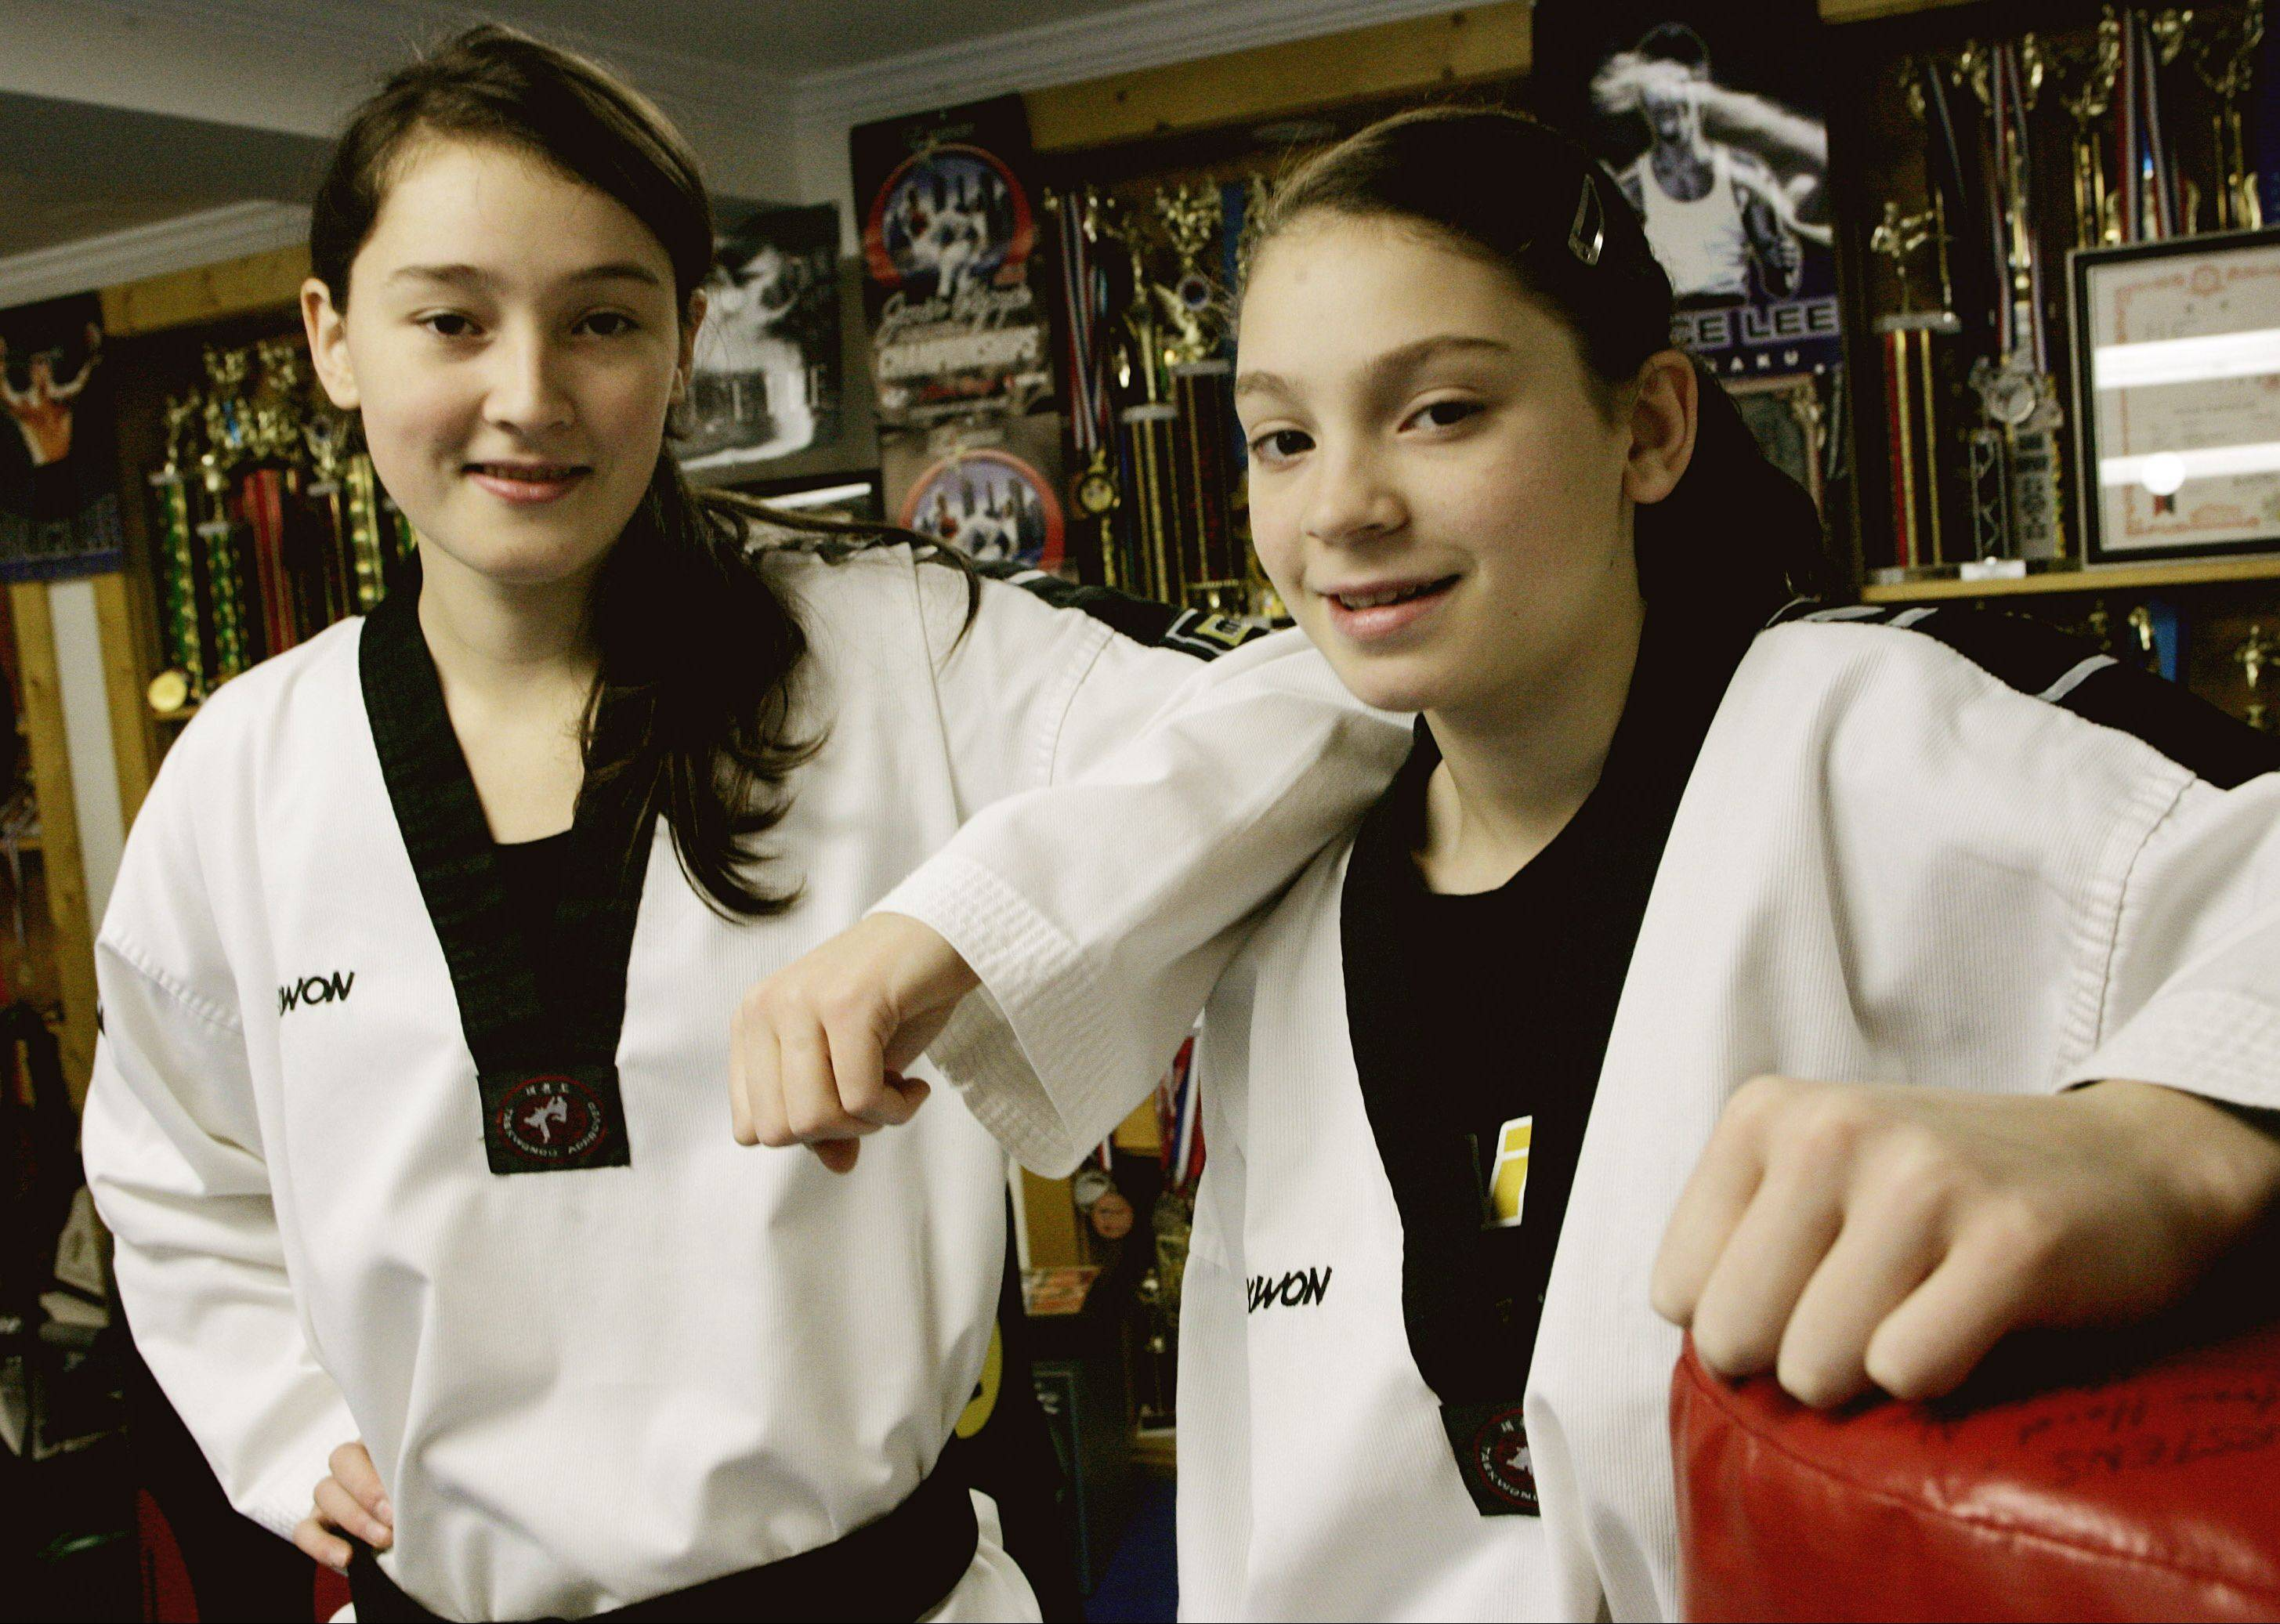 In 2010, the Daily Herald profiled Carolena Carstens, right, and her sister, Christina, both of whom at the time had been named to the Amateur Athletic Union National Taekwondo Team. A year and a half later, Carolena is preparing for competition on the biggest stage of all: the Olympics.